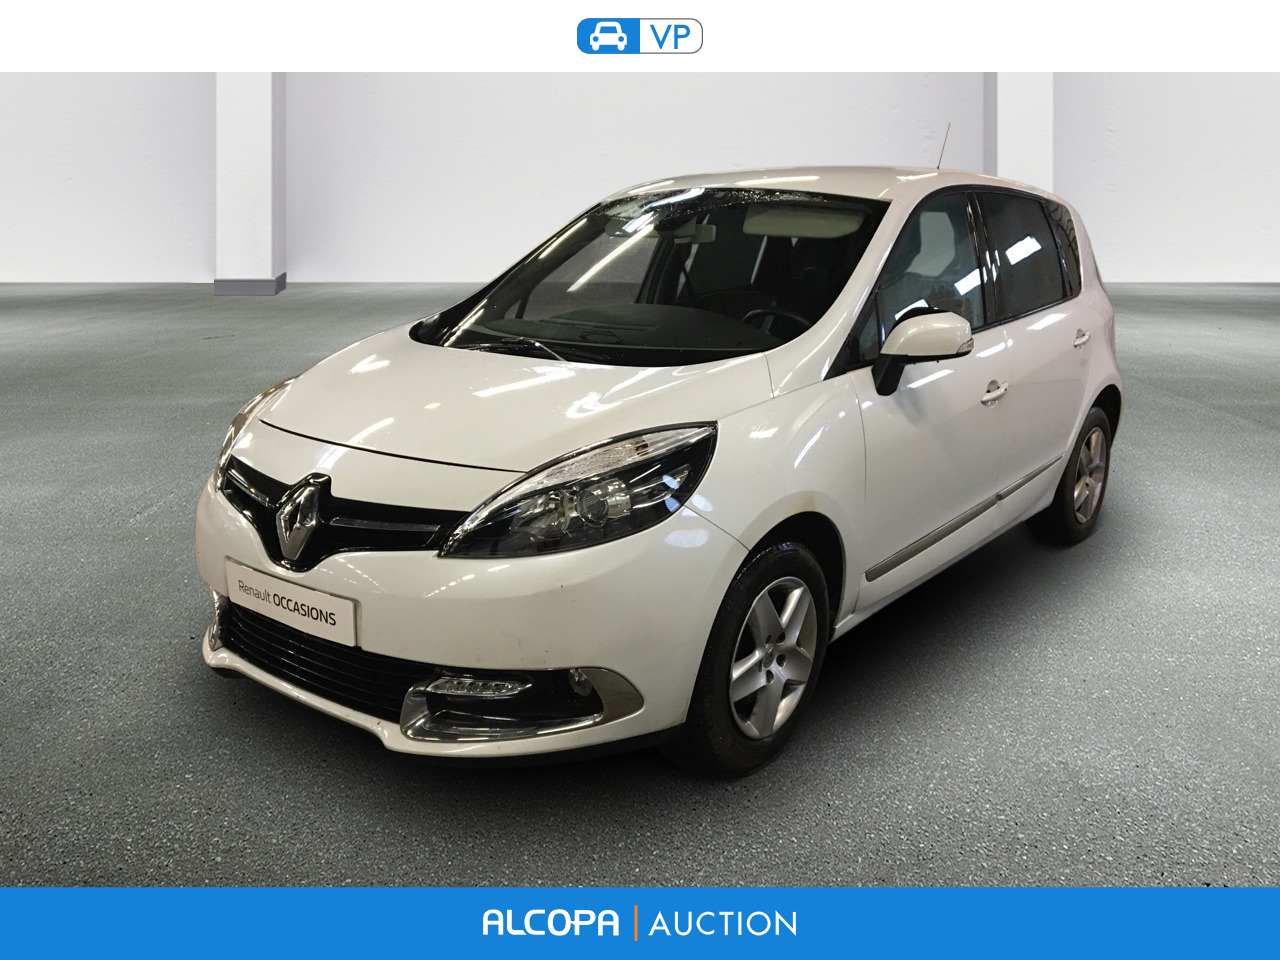 renault scenic iii business 02 2013 09 2016 scenic dci 110 energy eco2 business alcopa auction. Black Bedroom Furniture Sets. Home Design Ideas